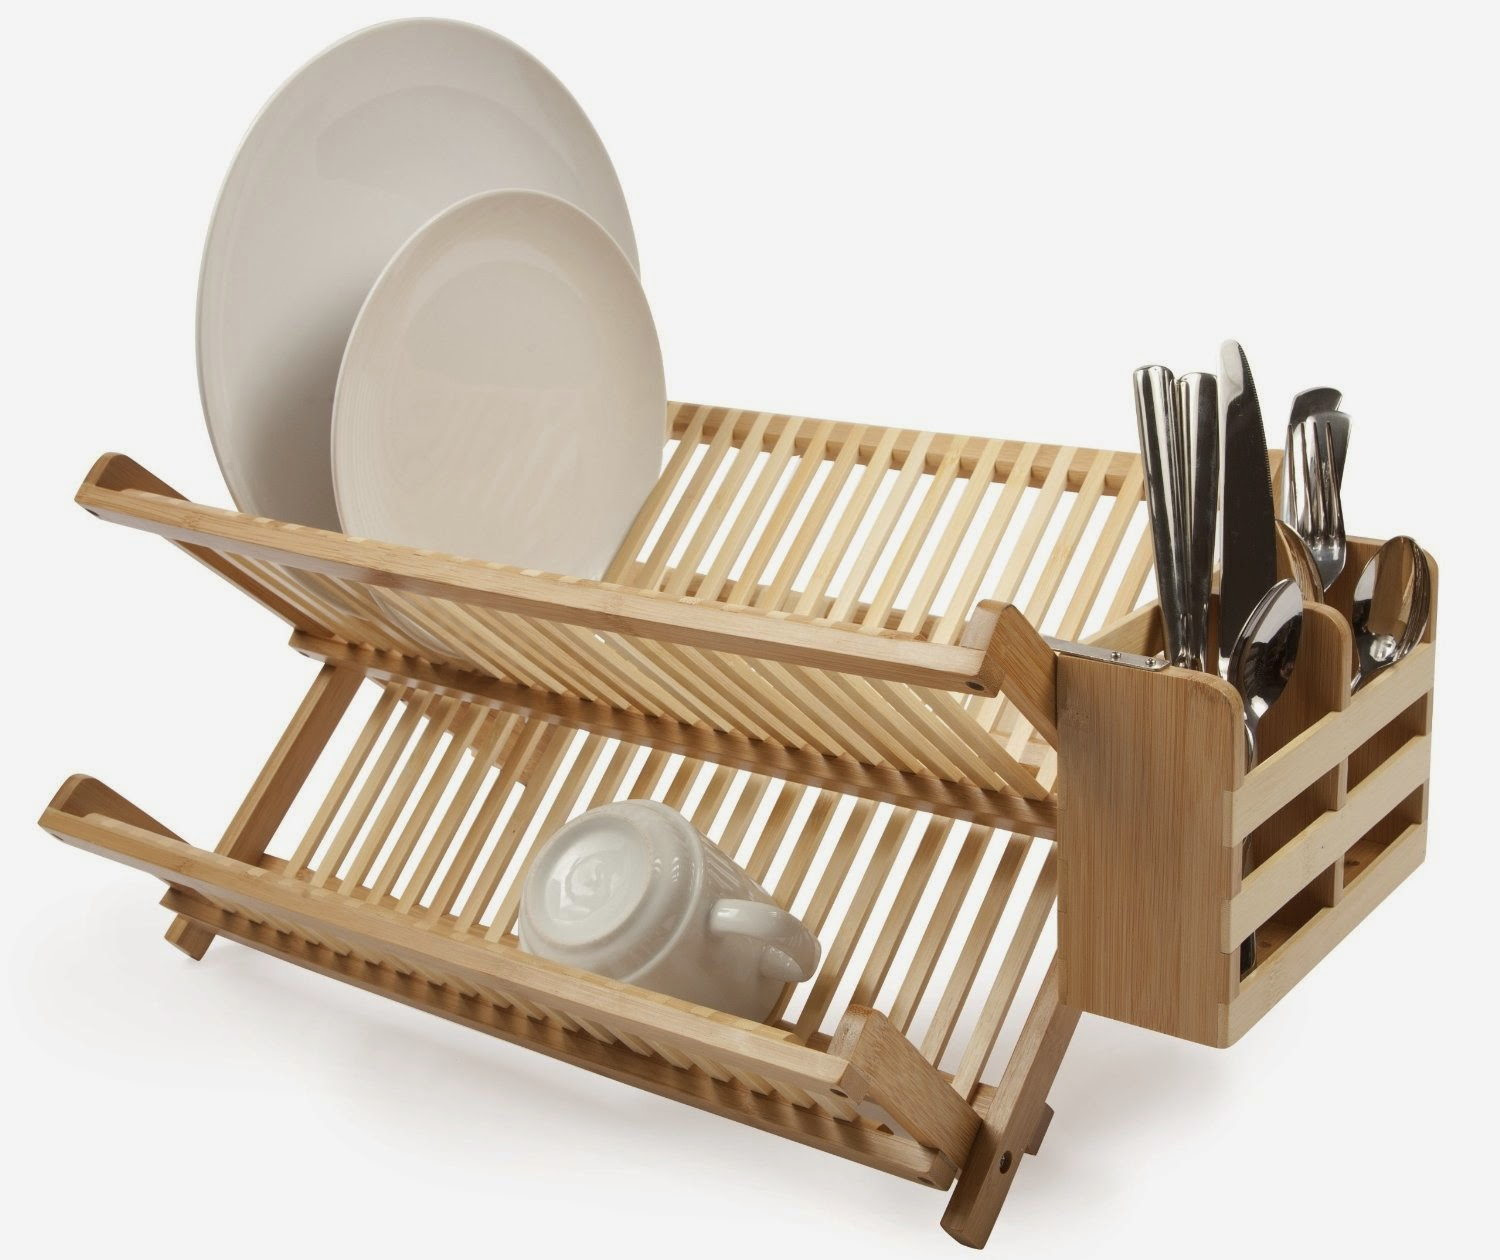 Shop At The E Store Bamboo Dish Rack Utensil Holder